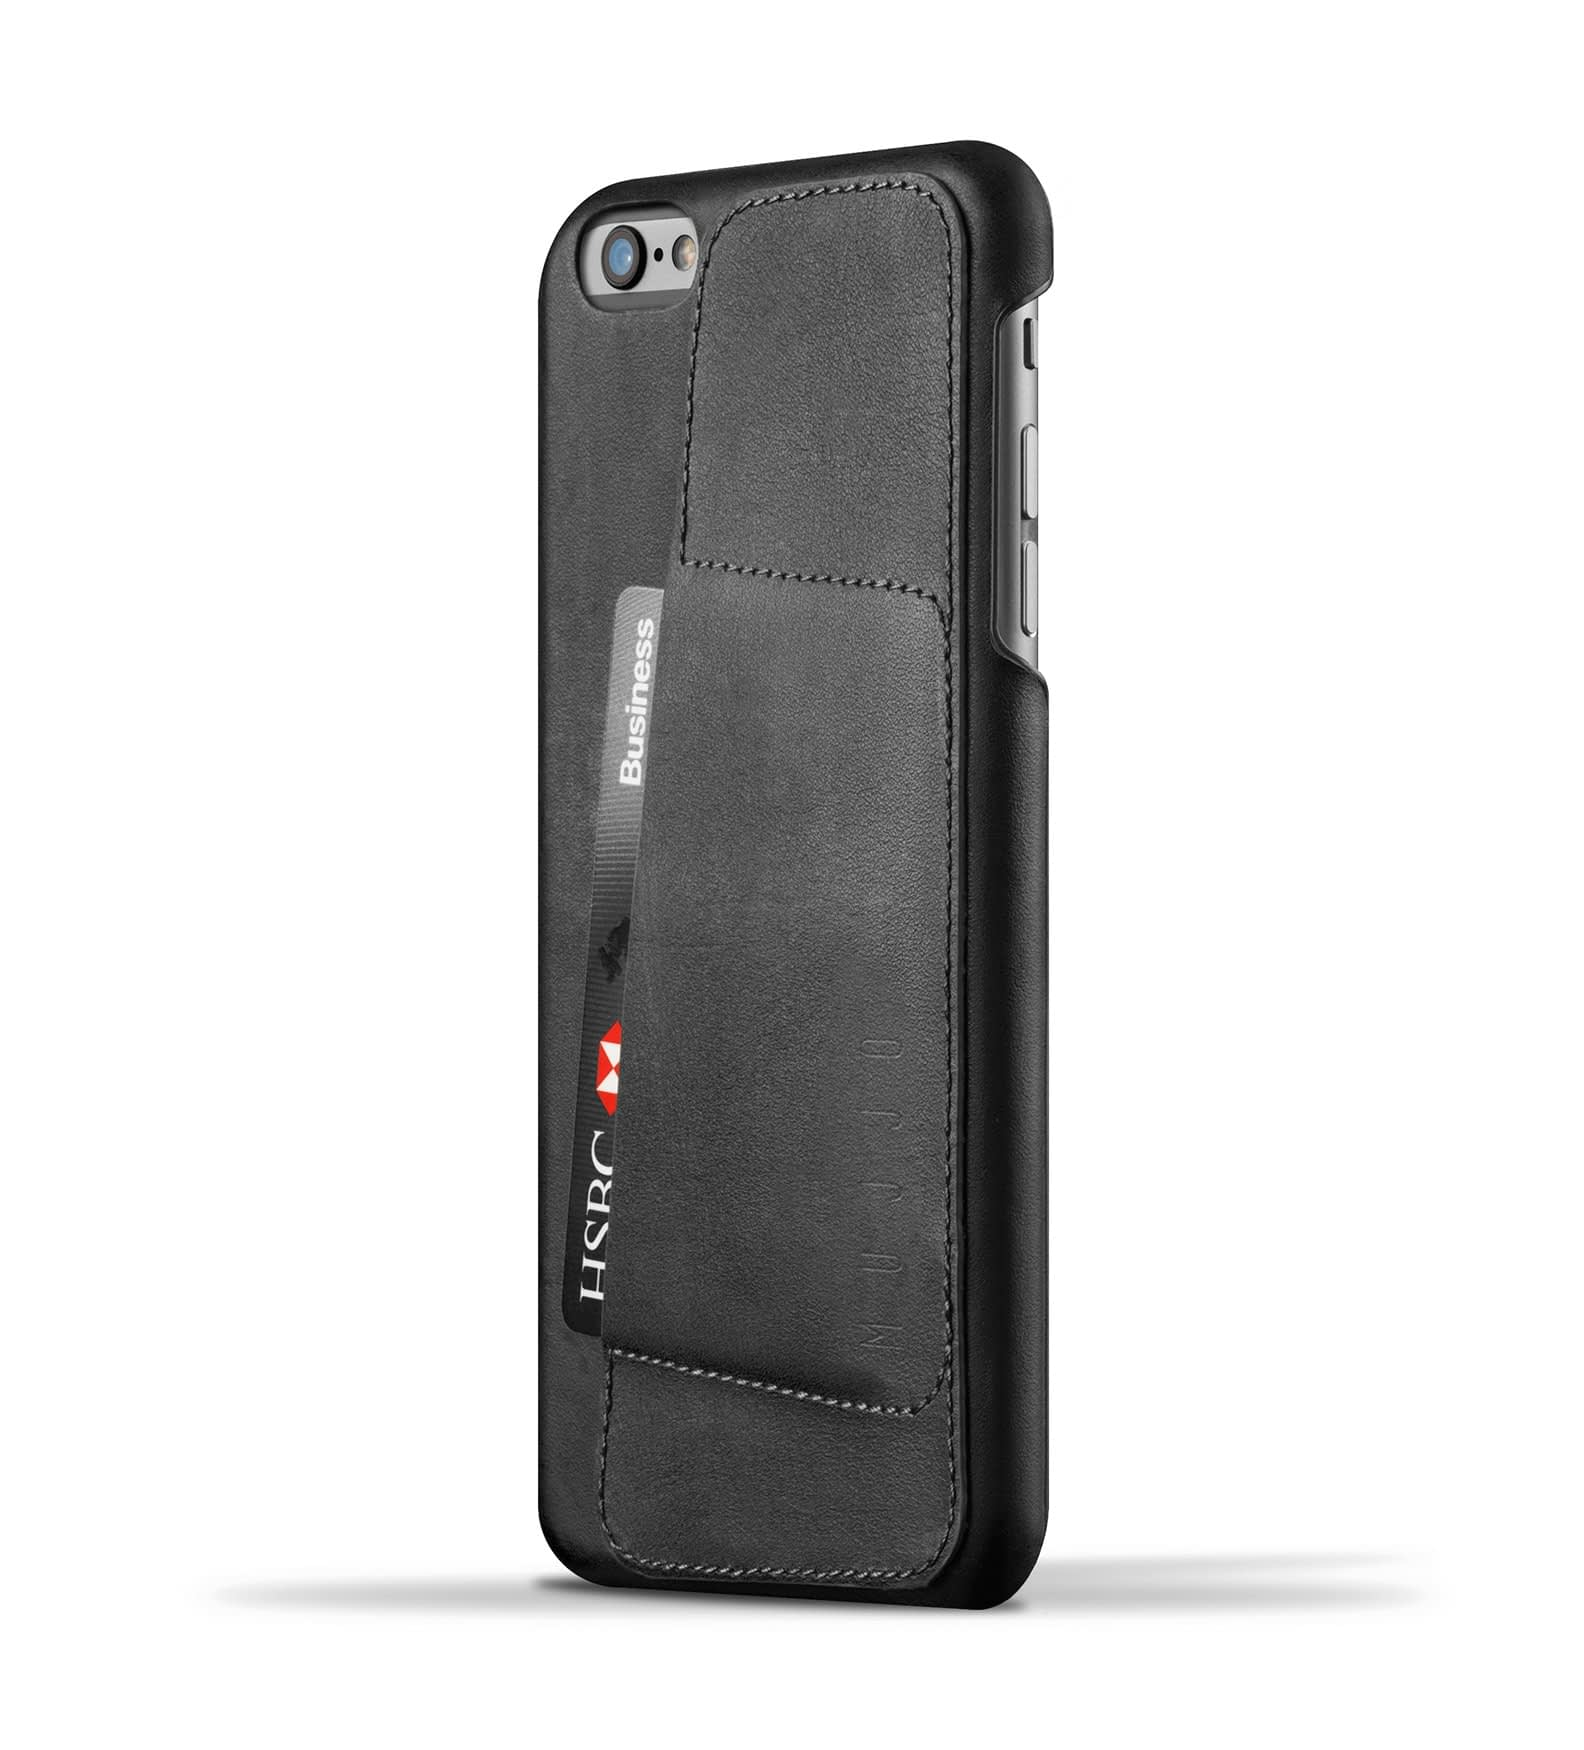 leather wallet case 80 for iphone 6s plus black